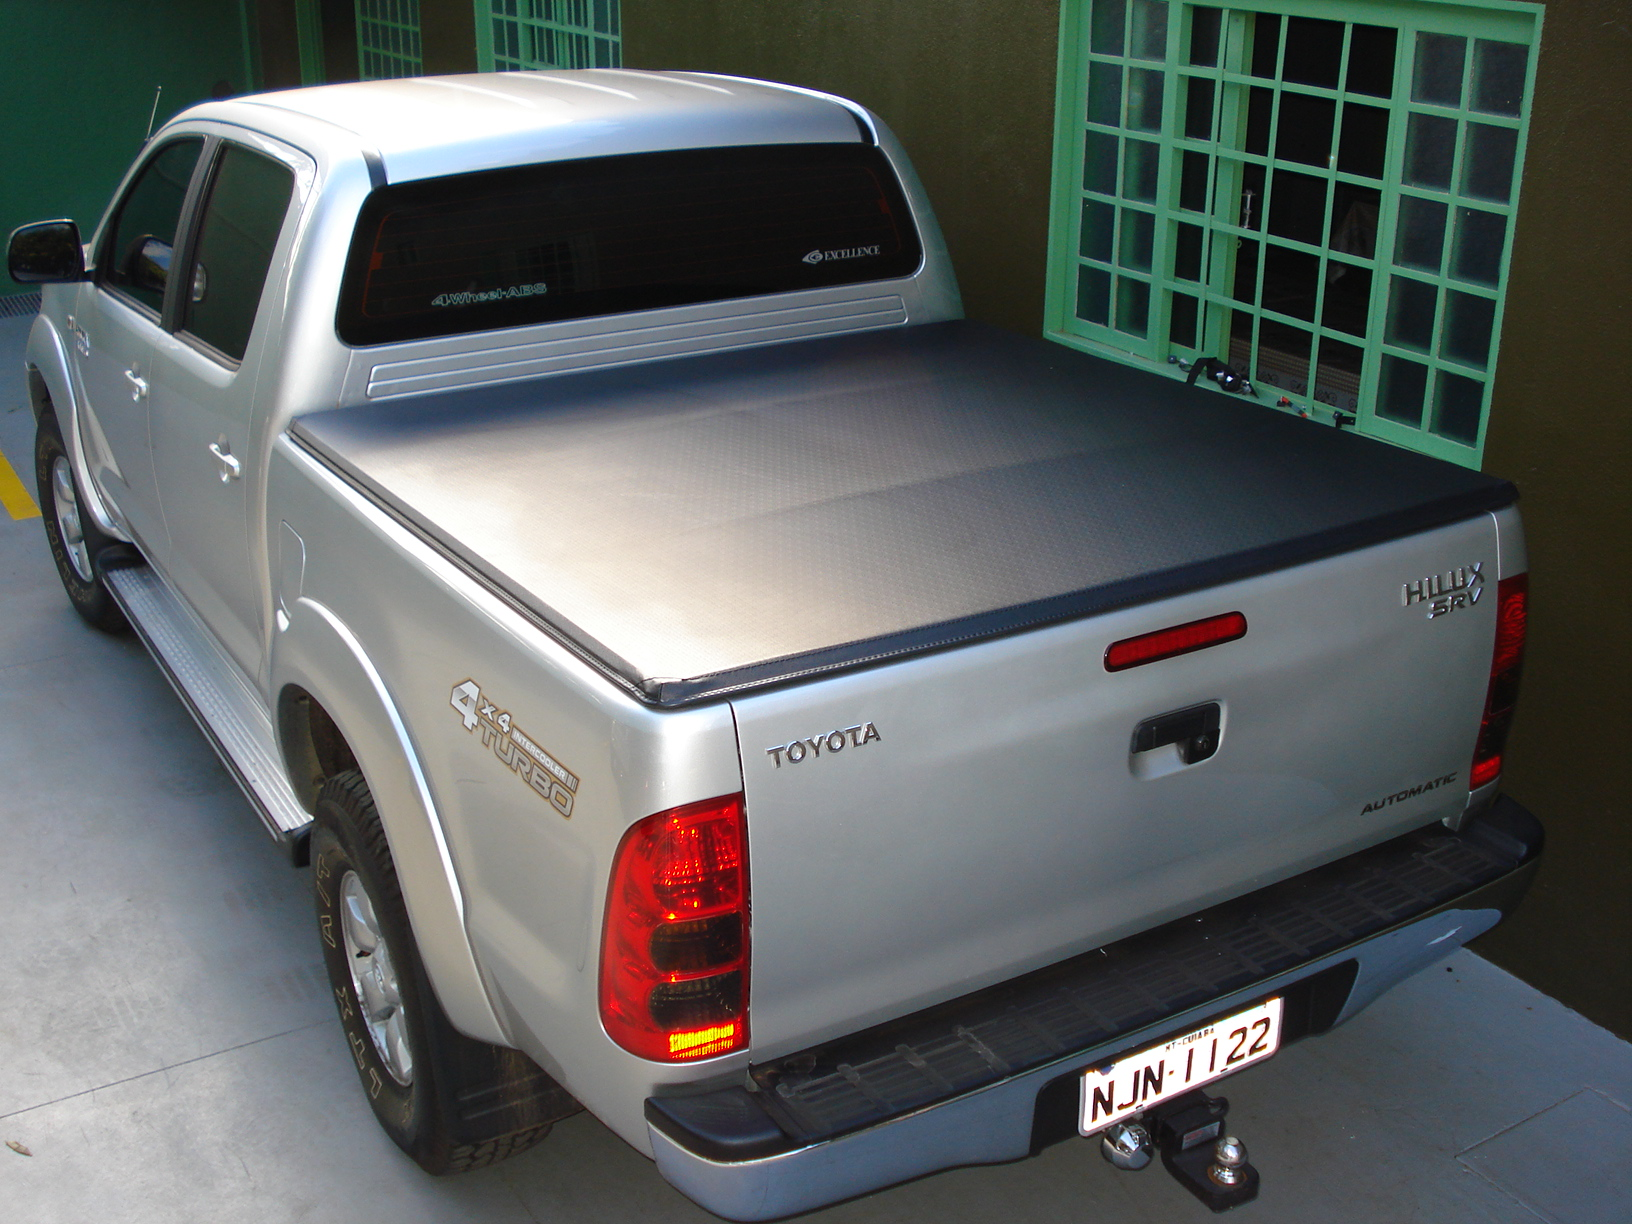 Hilux Cabine Dupla